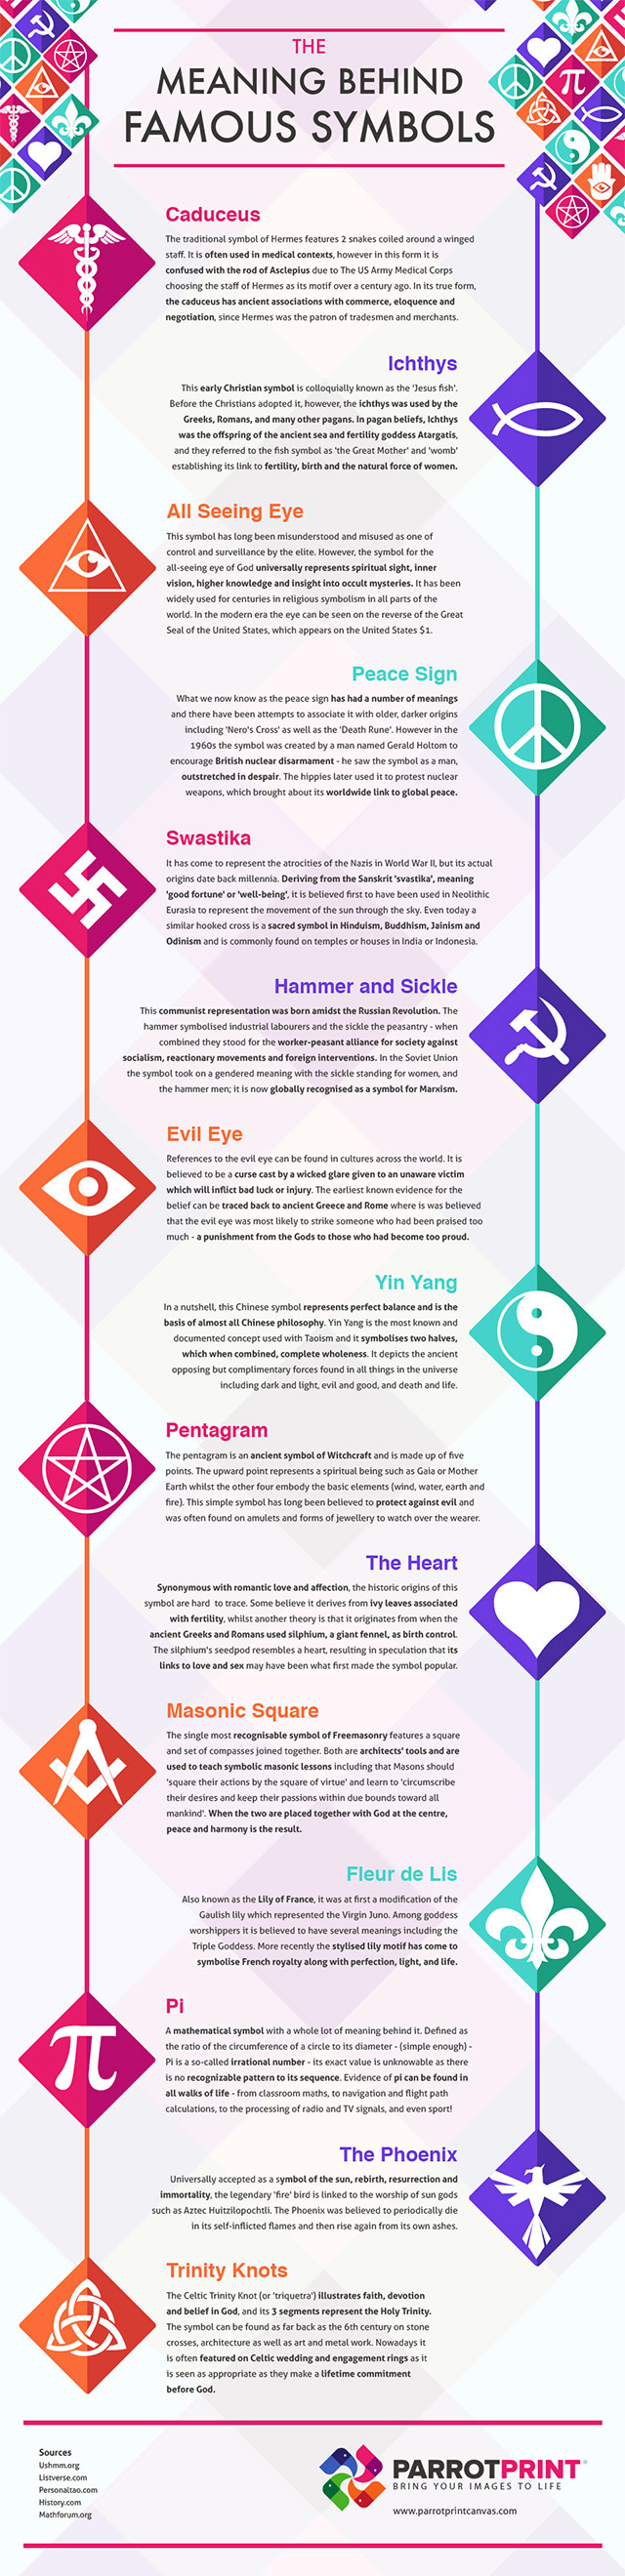 The Meaning Behind Famous Signs & Symbols